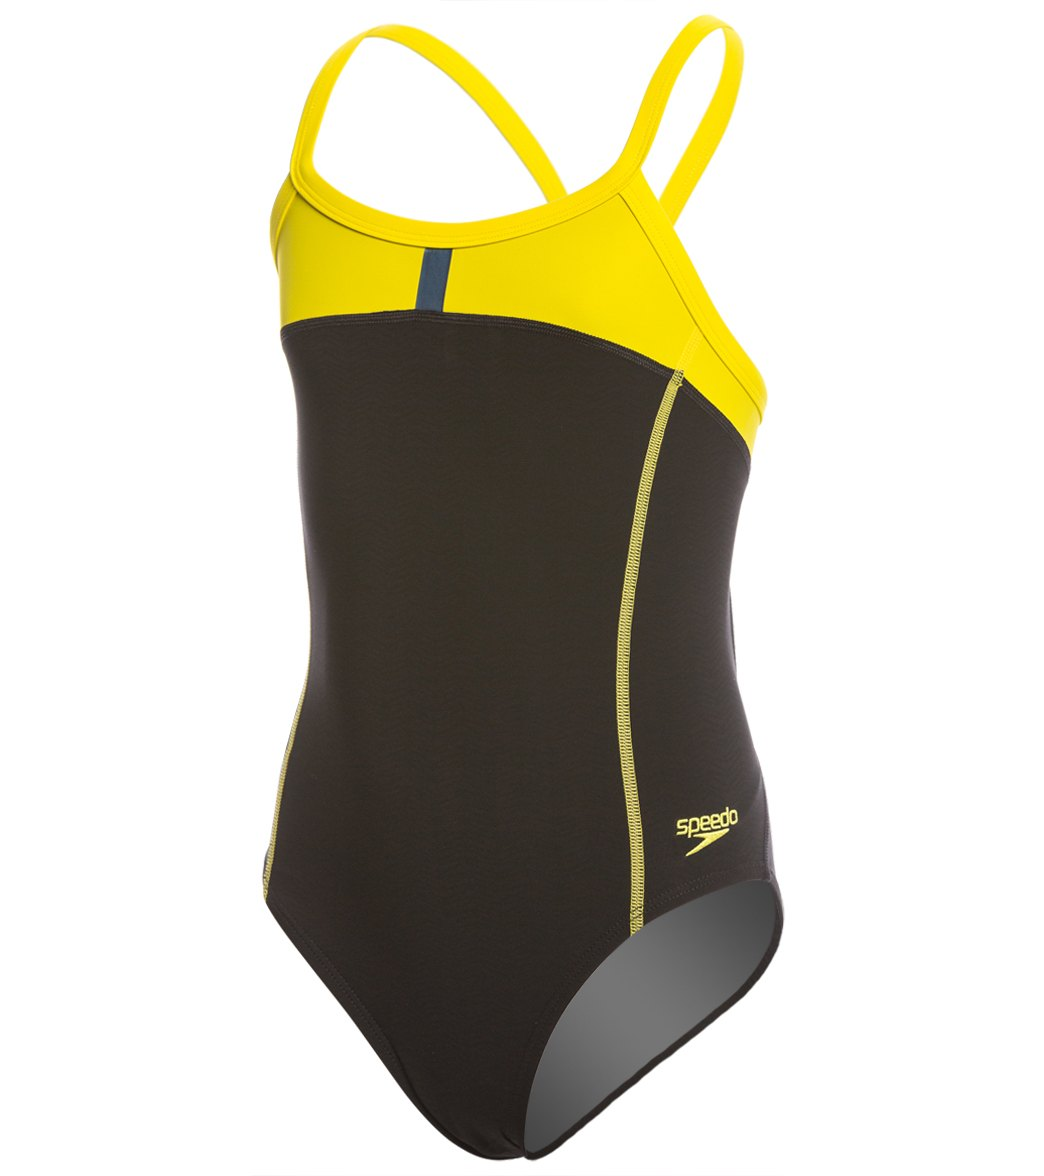 575a445662 Speedo Youth PowerPlus Bolt Splice Drill Back One Piece Swimsuit at  SwimOutlet.com - Free Shipping